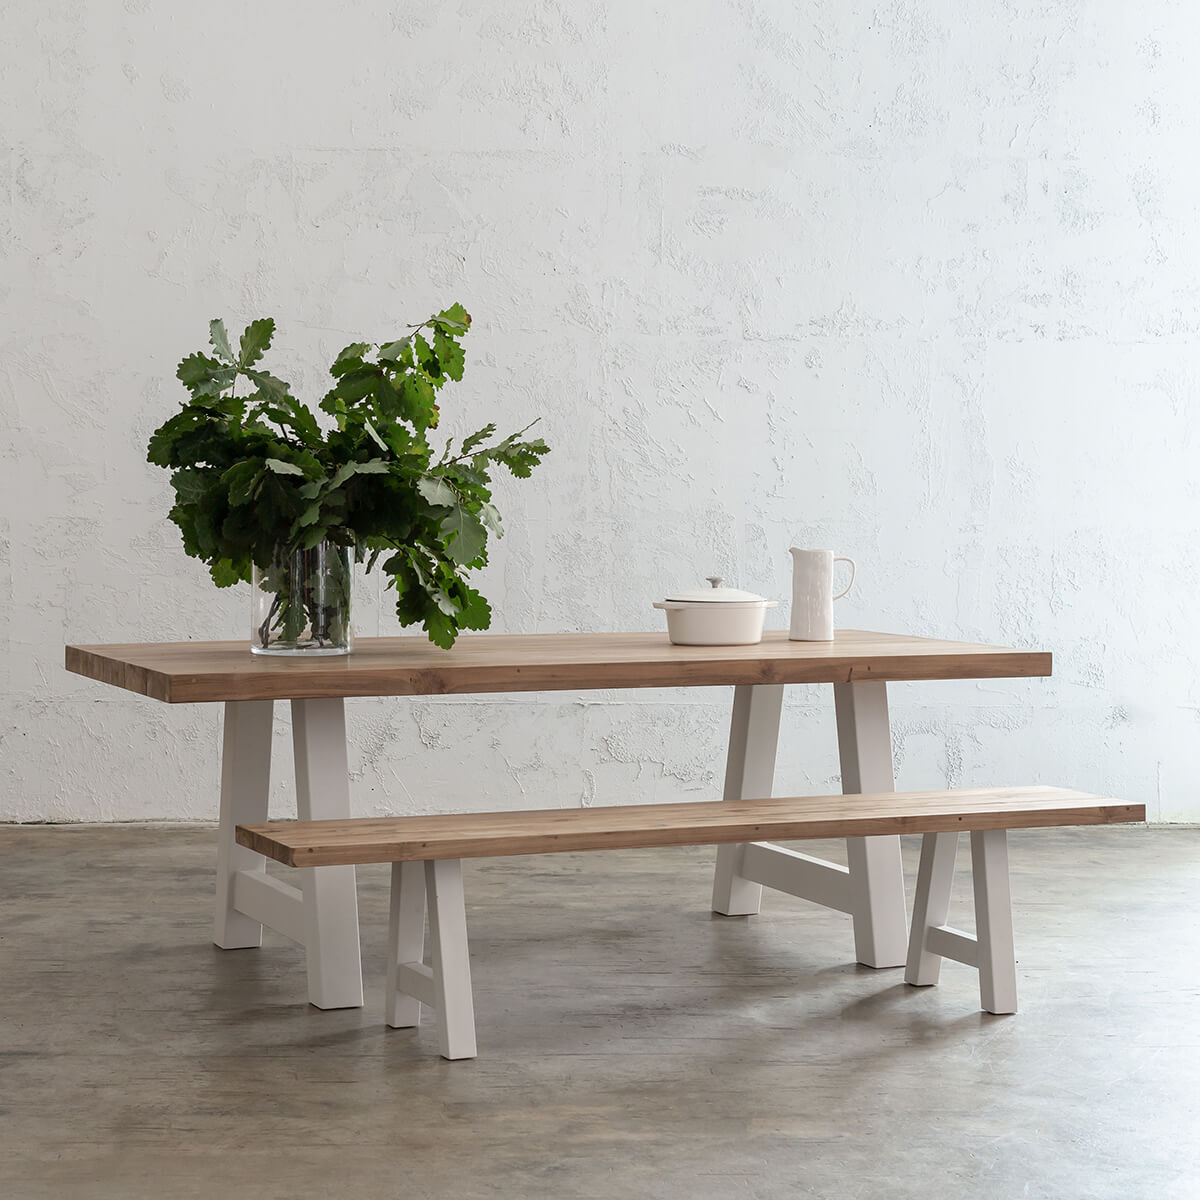 Picture of: Club Grenada Teak Dining Bench Recycled Teak Slatted Outdoor Dining Table